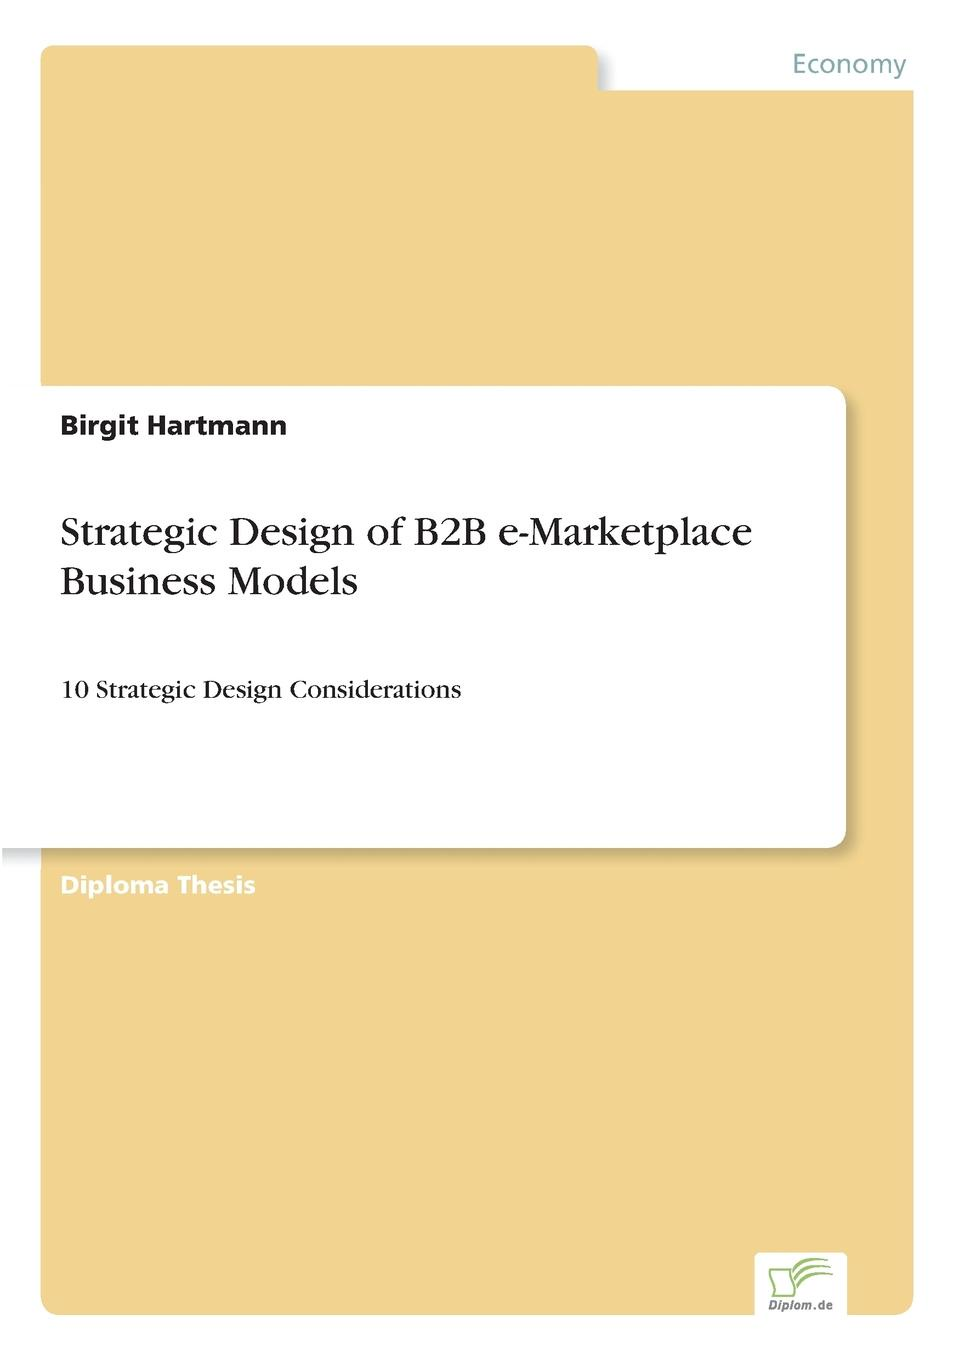 Birgit Hartmann Strategic Design of B2B e-Marketplace Business Models harry b demaio cissp b2b and beyond new business models built on trust